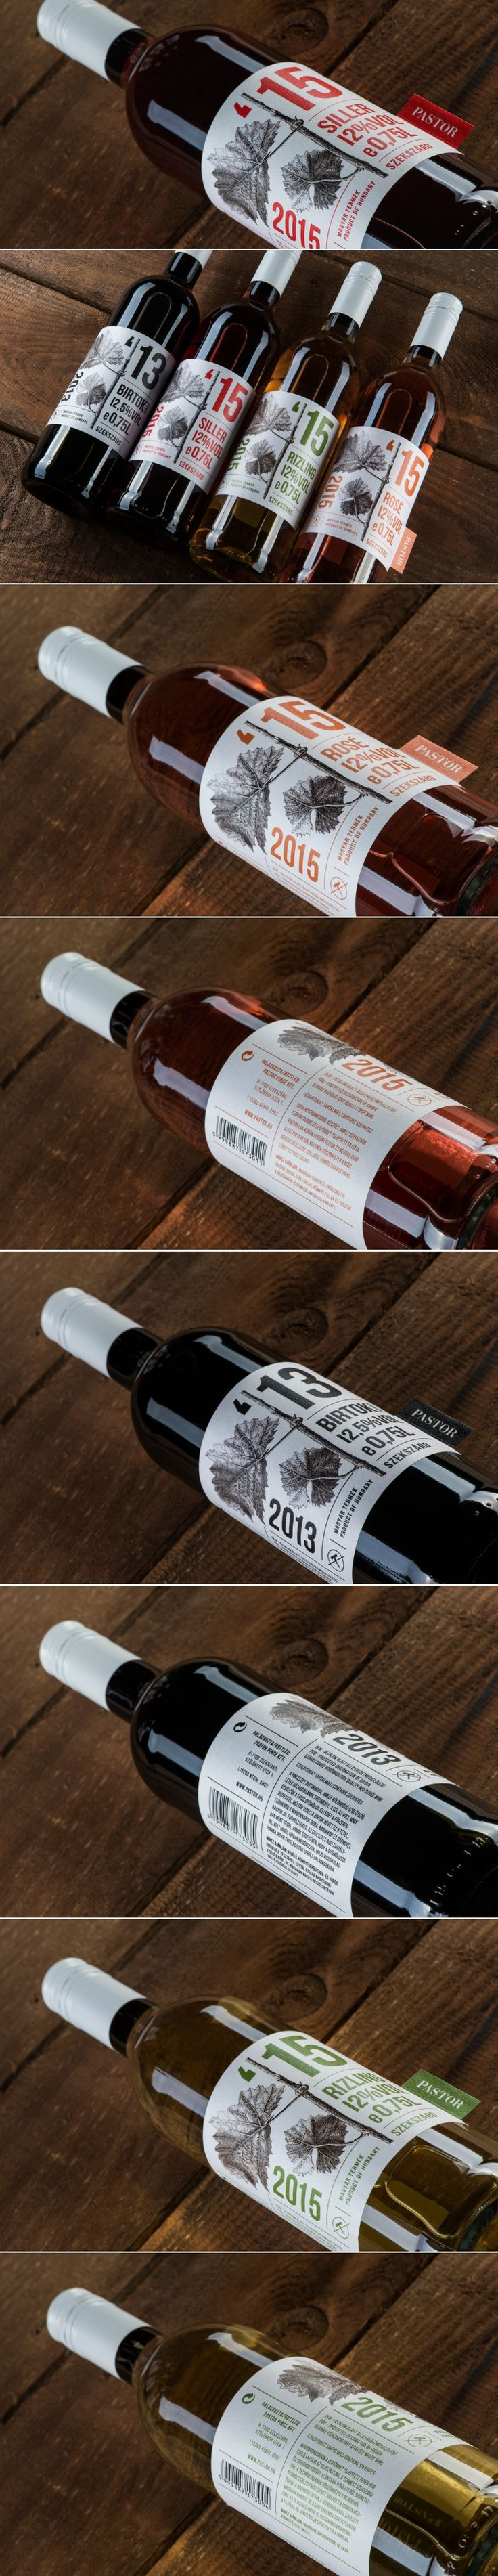 Pastor Winery's Wine with Screw Cap — The Dieline | Packaging & Branding Design & Innovation News